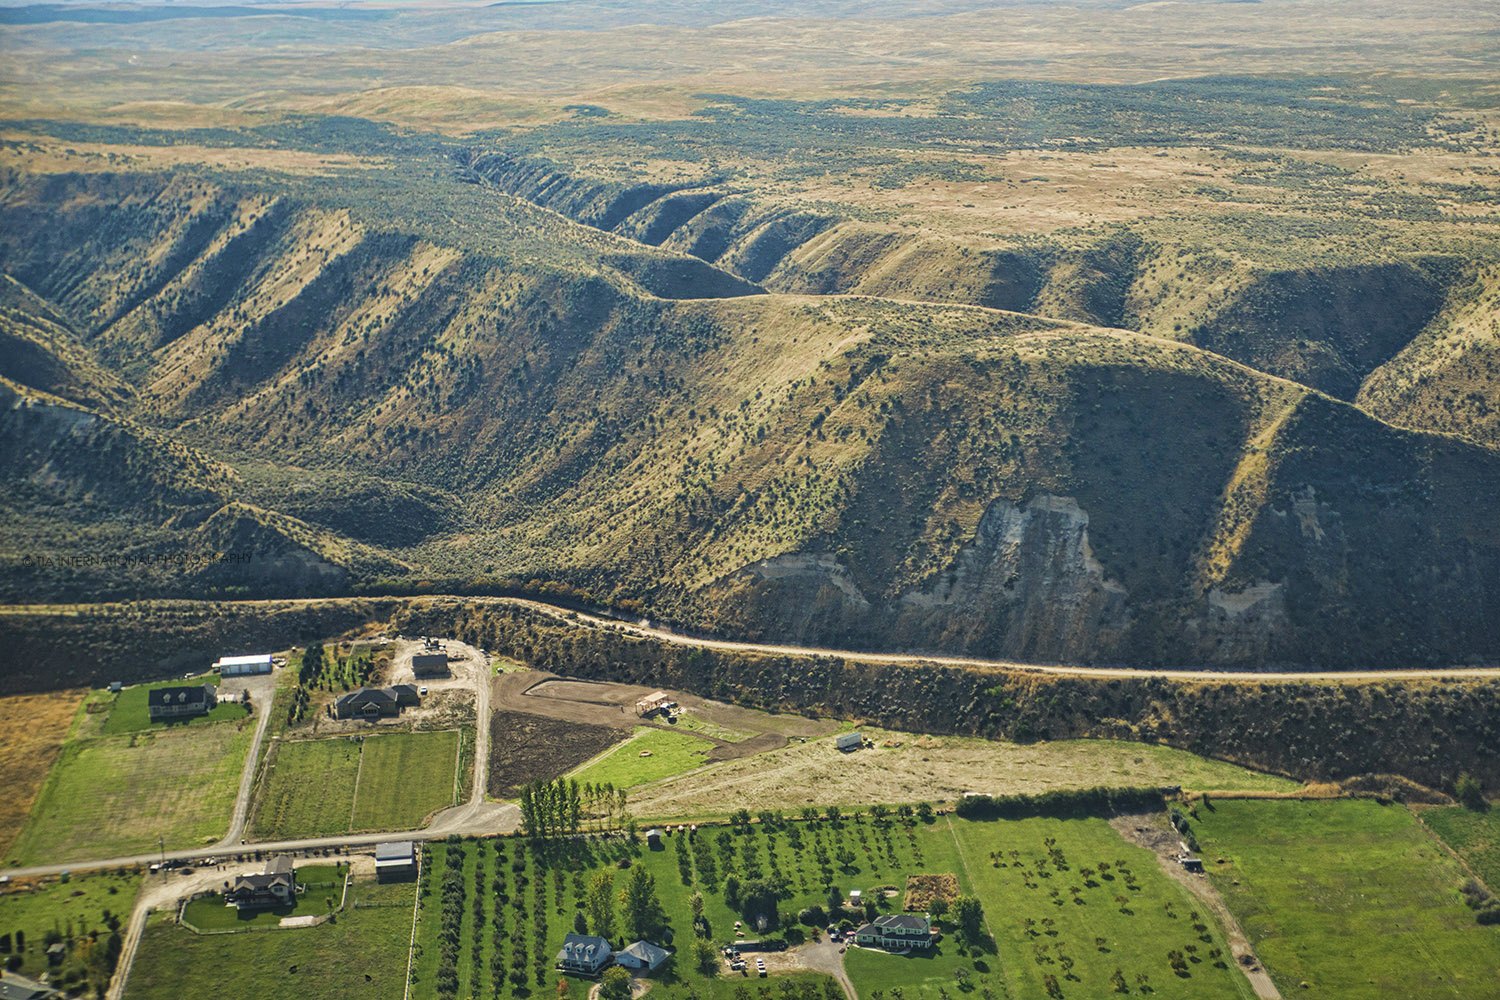 Aerial view of the topography near Emmett, Idaho.